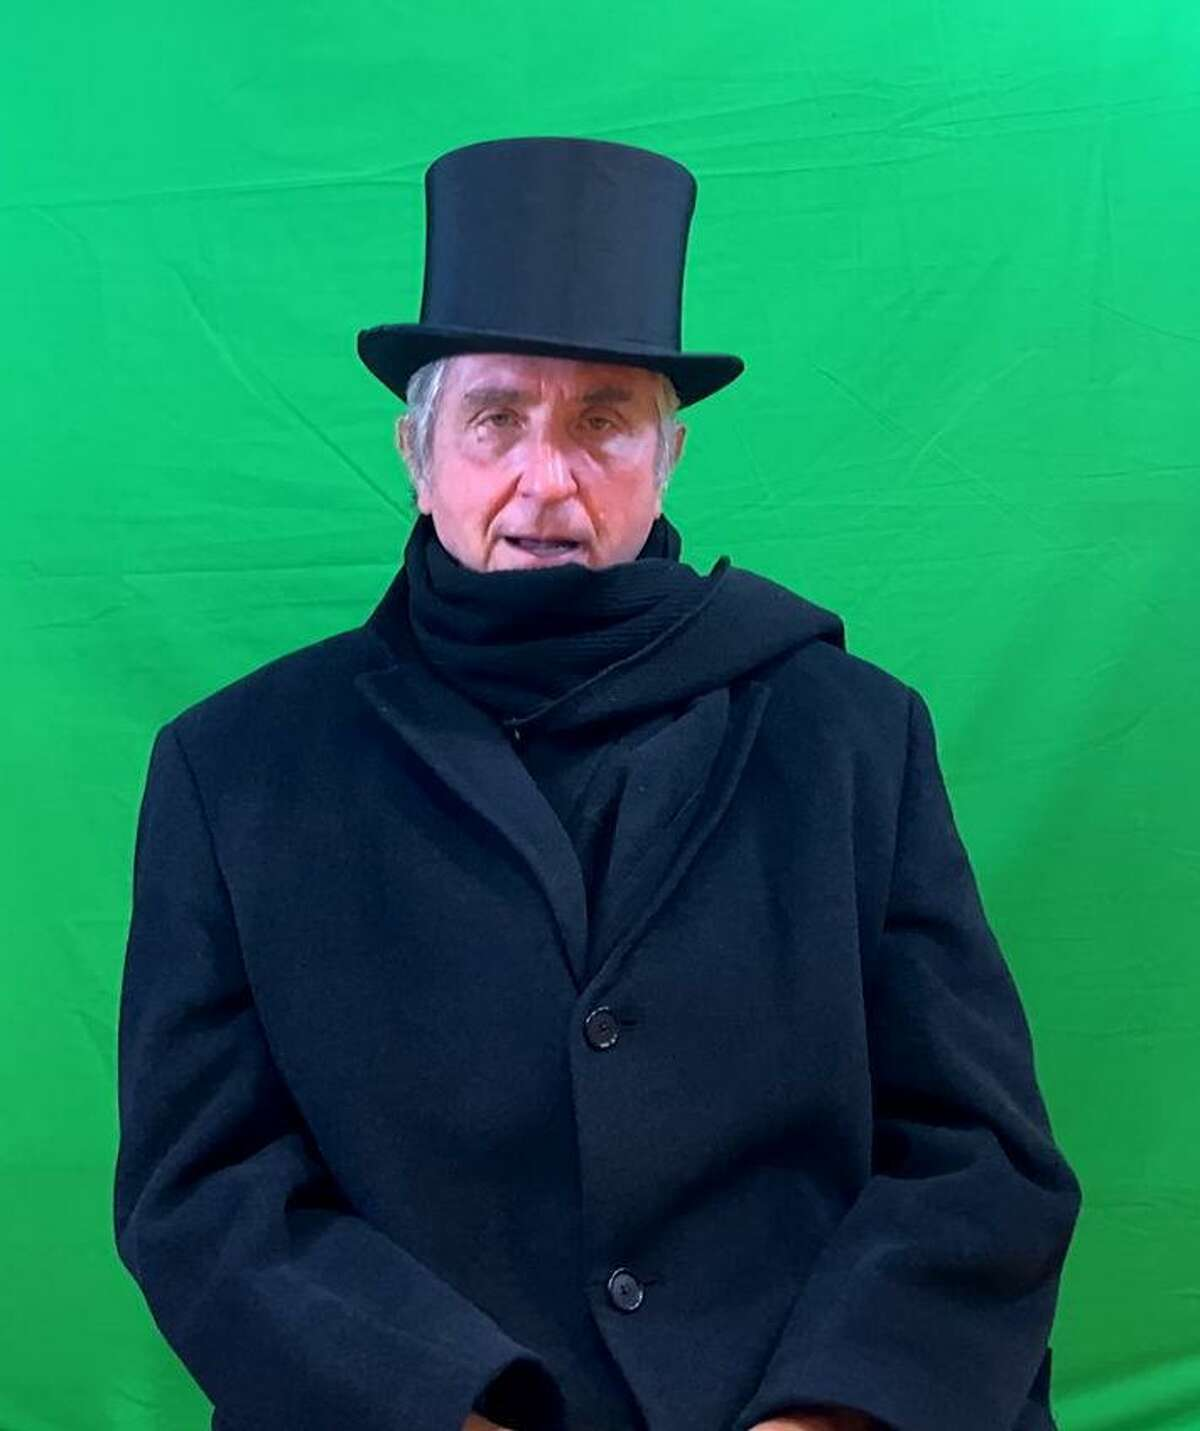 Peter Eldridge of the New Canaan Men's Club, dressed as Scrooge, in front of the green screen used while making the production.